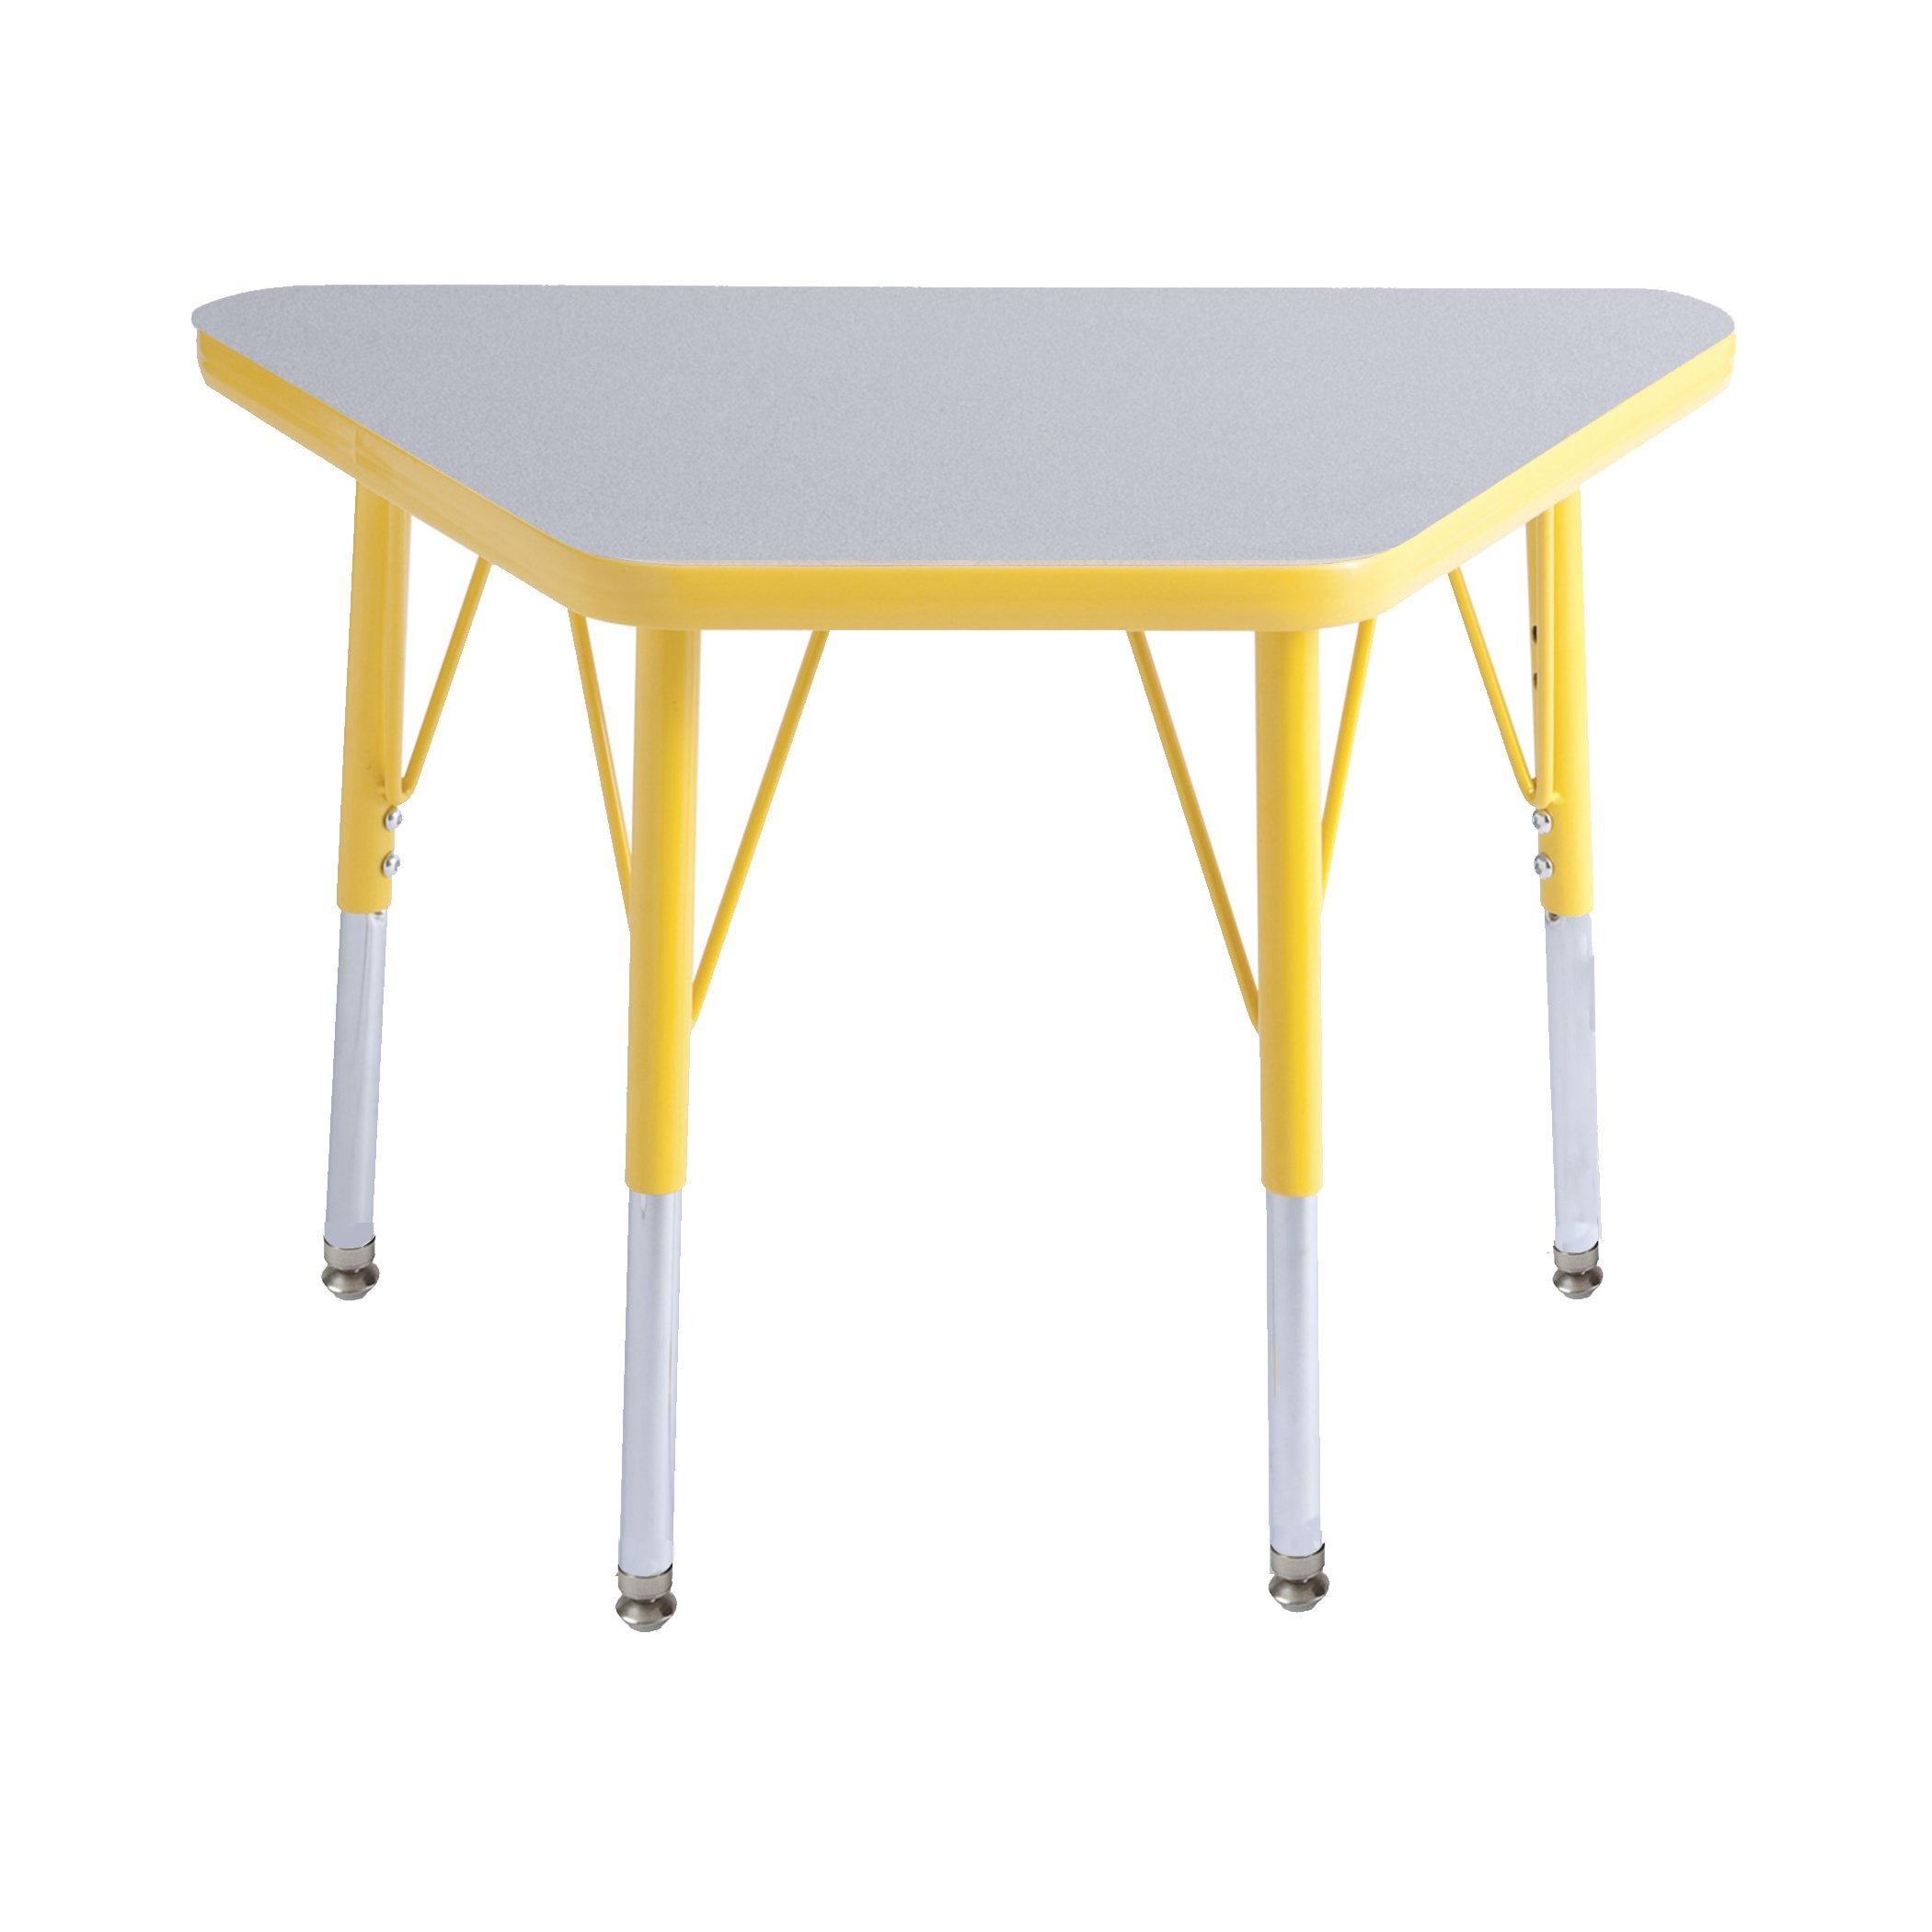 ECR4Kids Everyday T-Mold 18'' x 30'' Trapezoid Activity School Table, Toddler Legs w/Swivel Glides, Adjustable Height 15-23 inch (Grey/Yellow) by ECR4Kids